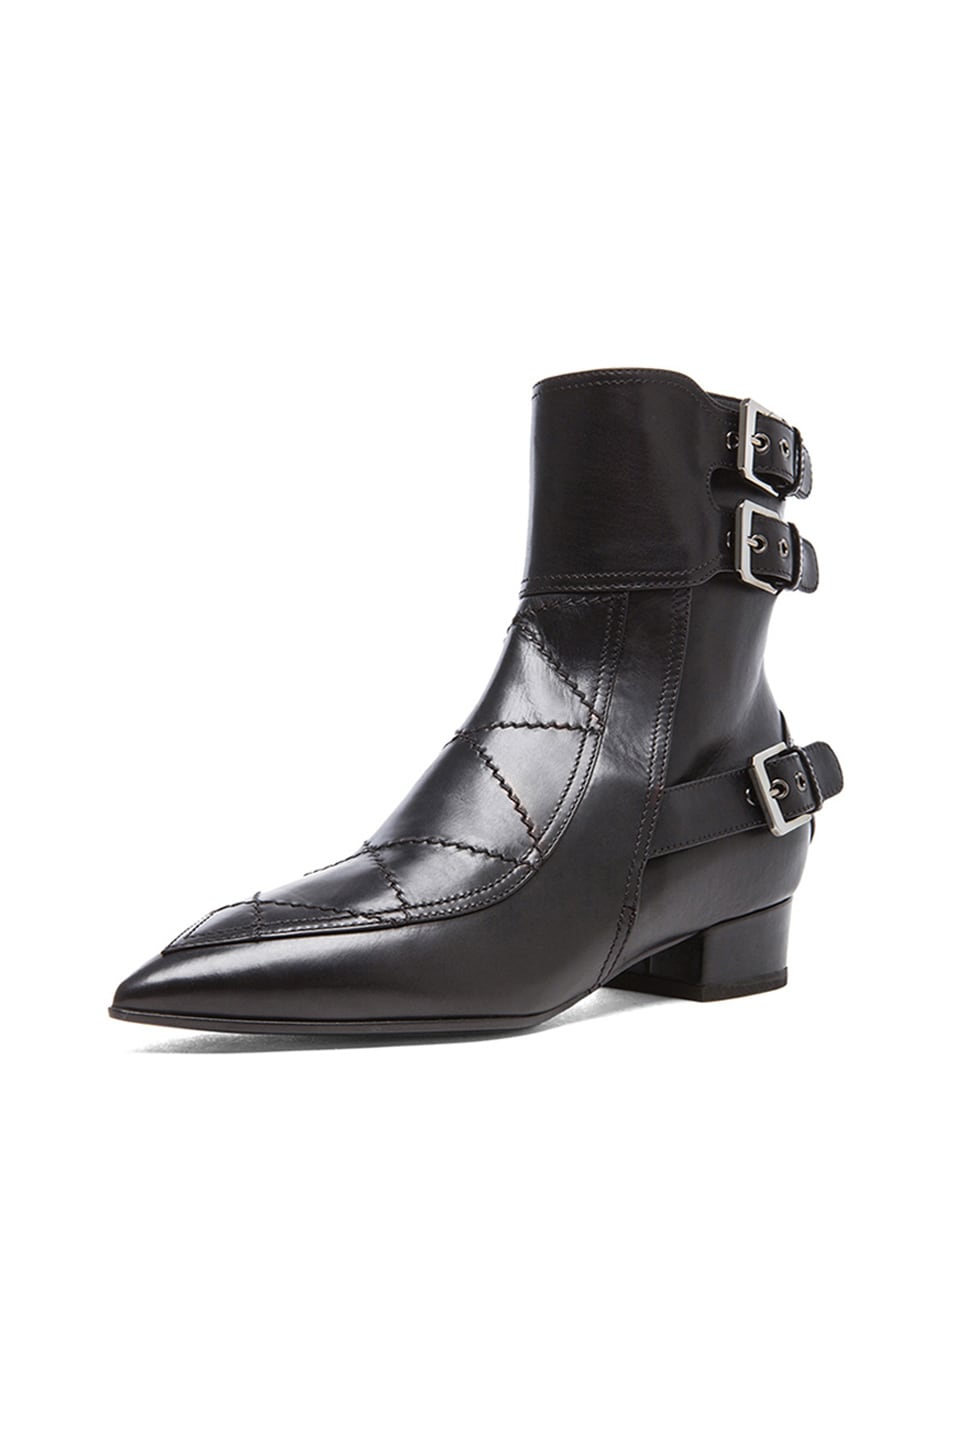 Image 2 of Laurence Dacade Gepetto Leather Booties in Black Leather